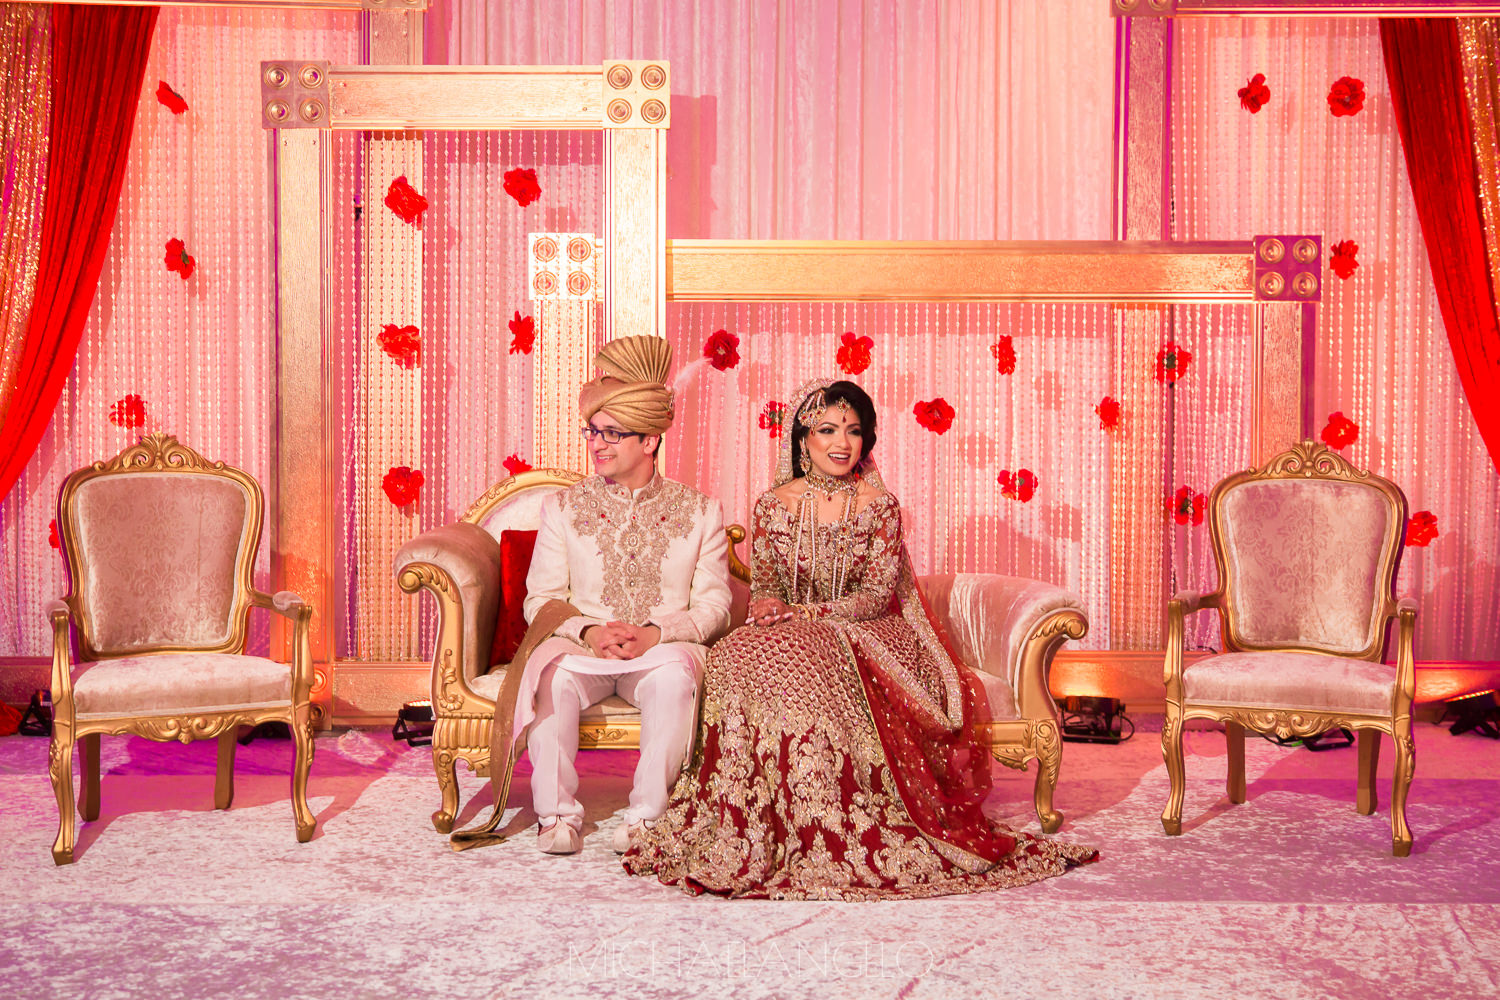 00001Tariq-&-Mariam-Wedding-Day-3297.jpg